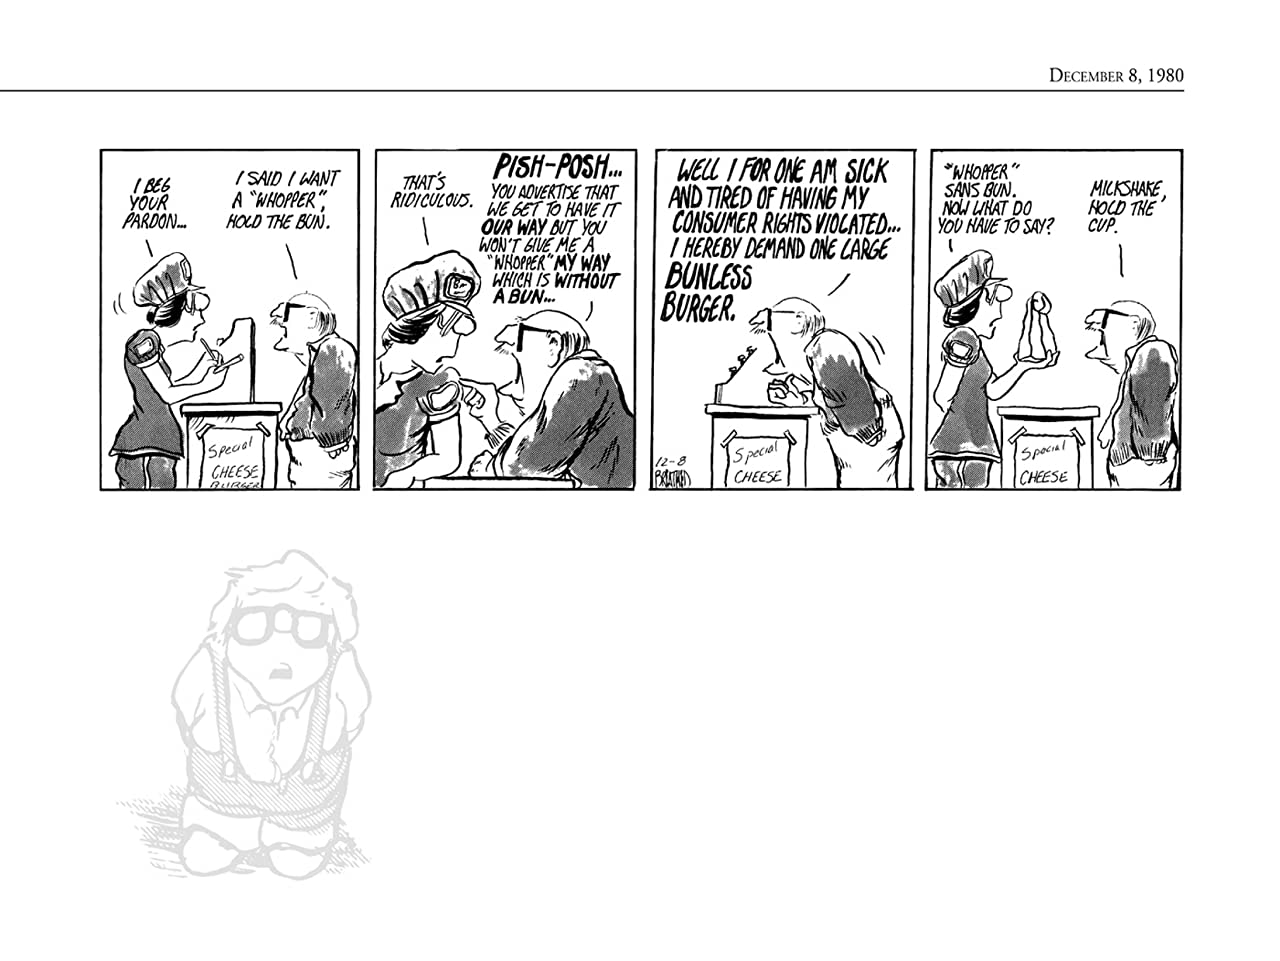 Bloom County Digital Library Vol. 1